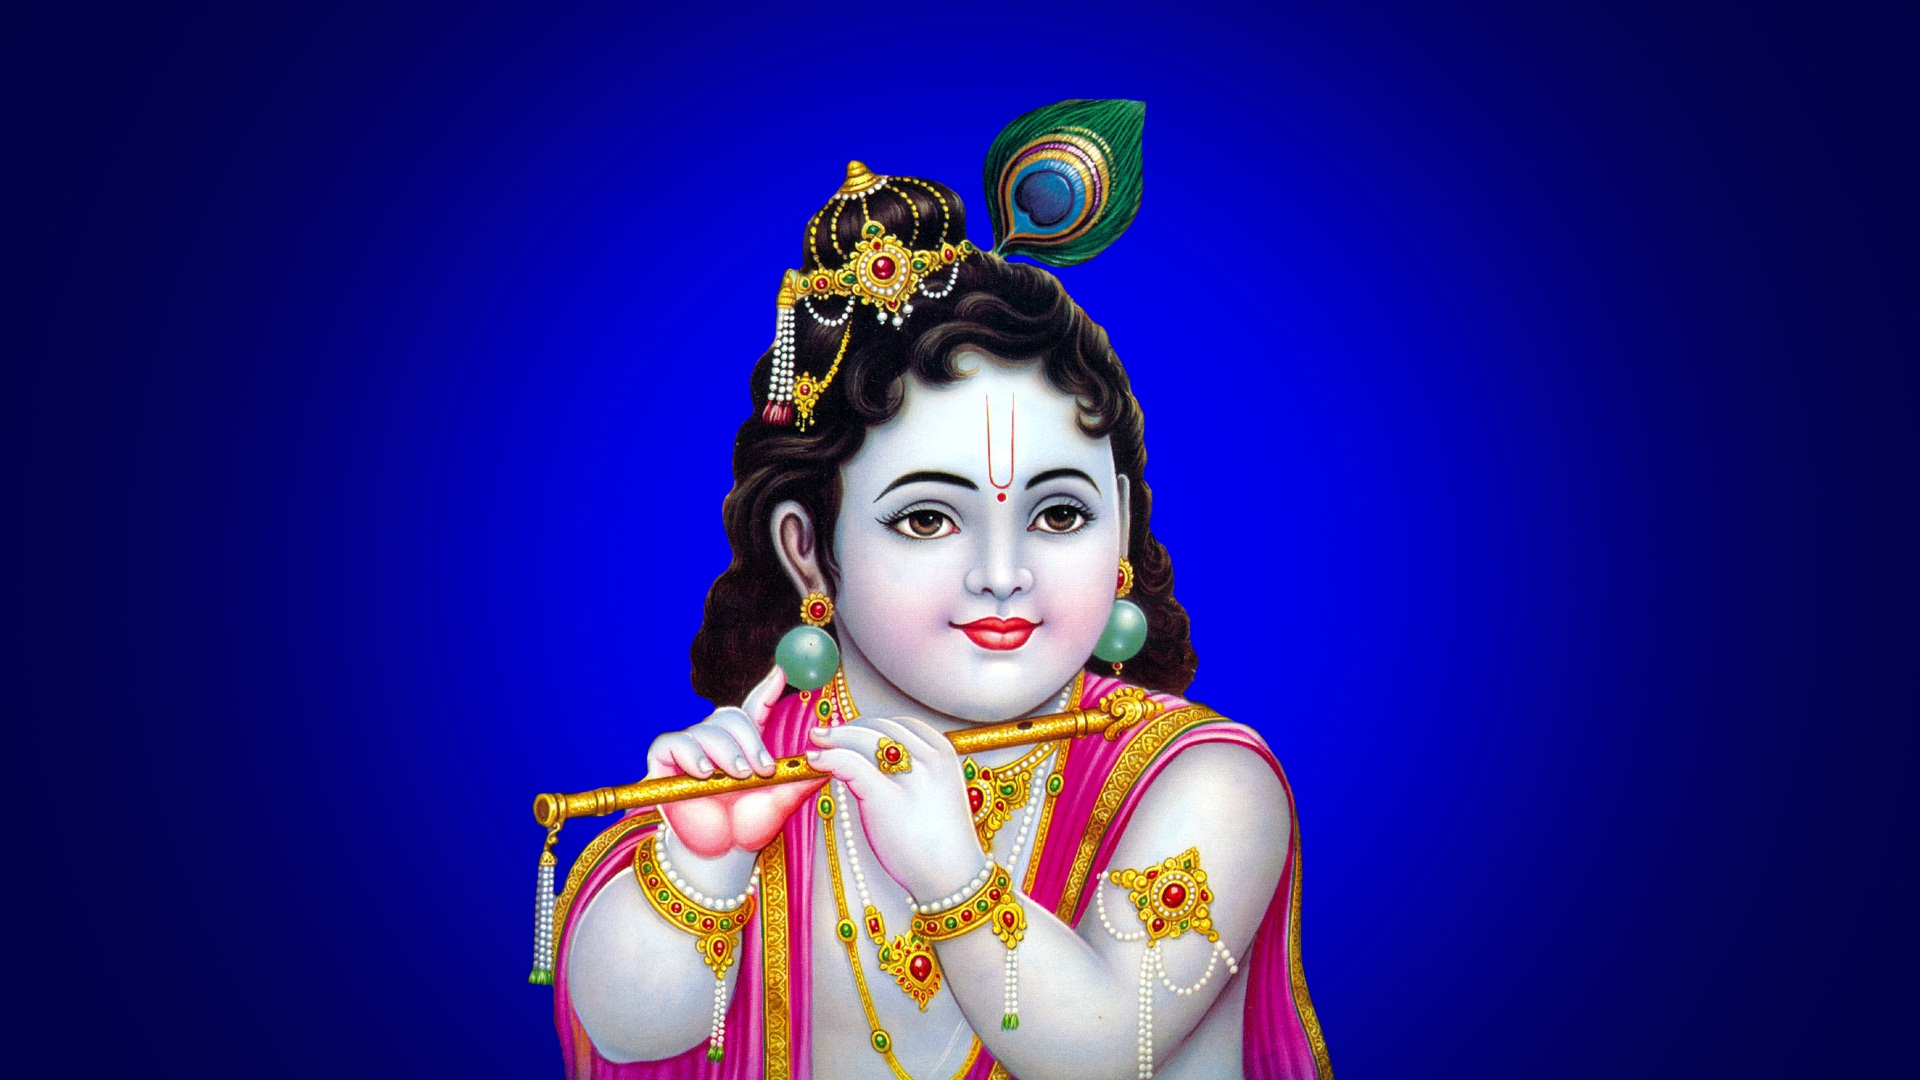 Little krishna wallpaper free download75